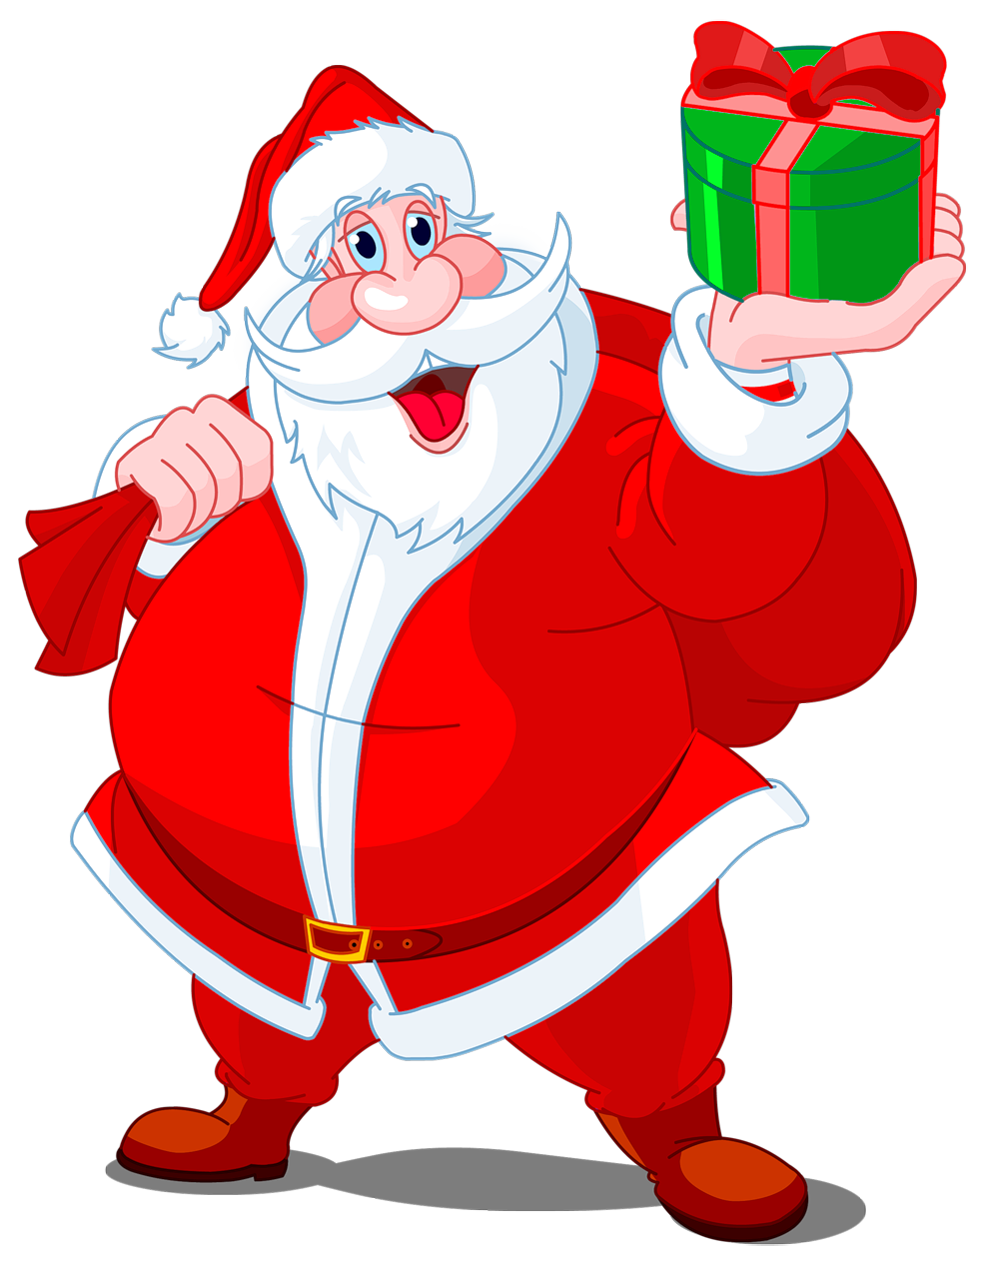 It is an image of Printable Santa Claus pertaining to cartoon